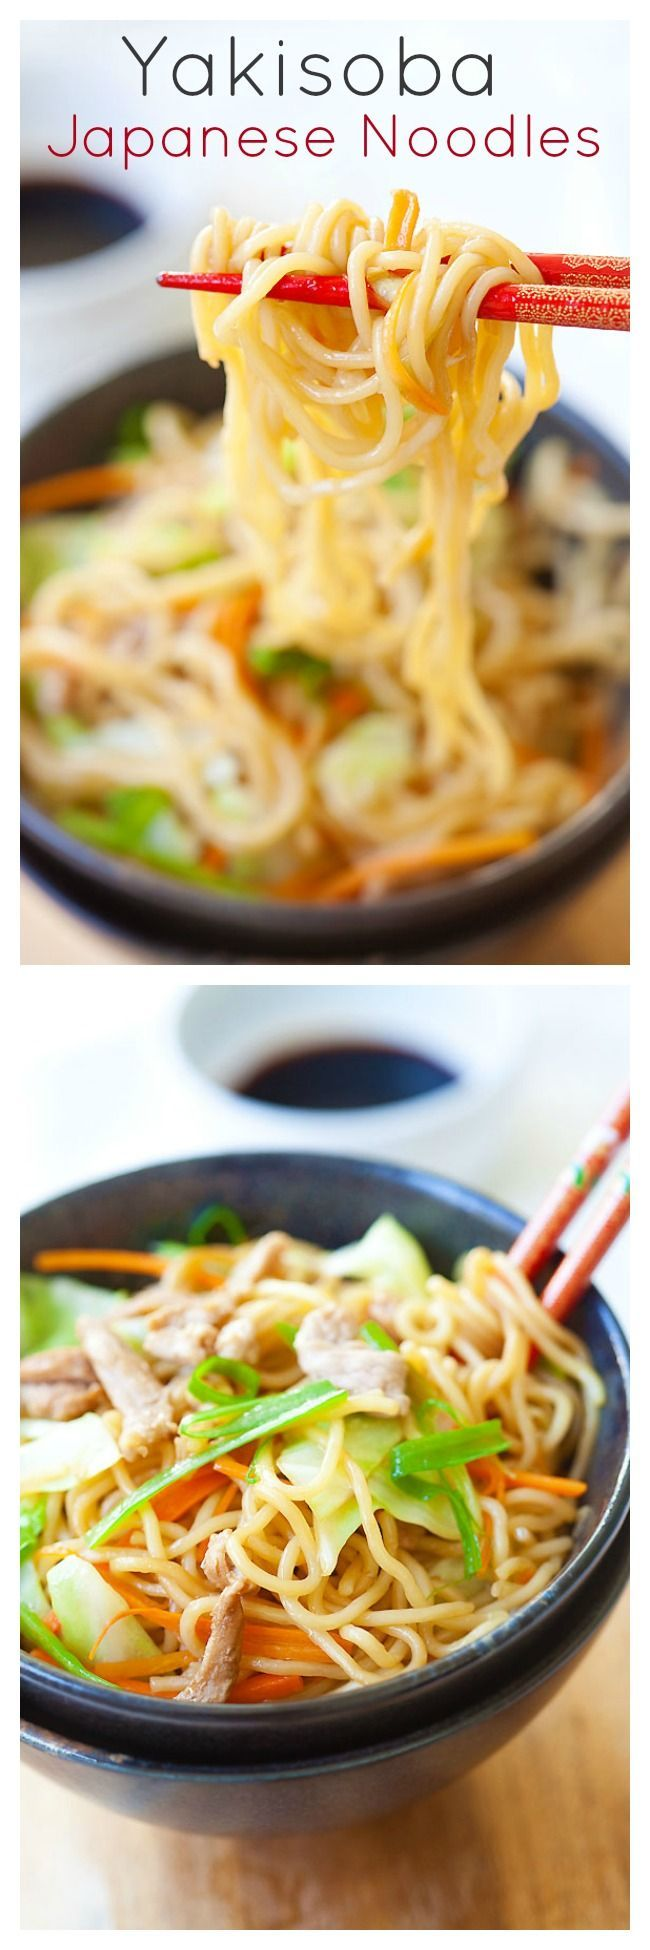 Yakisoba or Japanese fried noodles is a popular dish. Inspired by Chinese fried noodles, this yakisoba recipe is made with cabbage, carrot, and pork | rasamalaysia.com(dairy free)